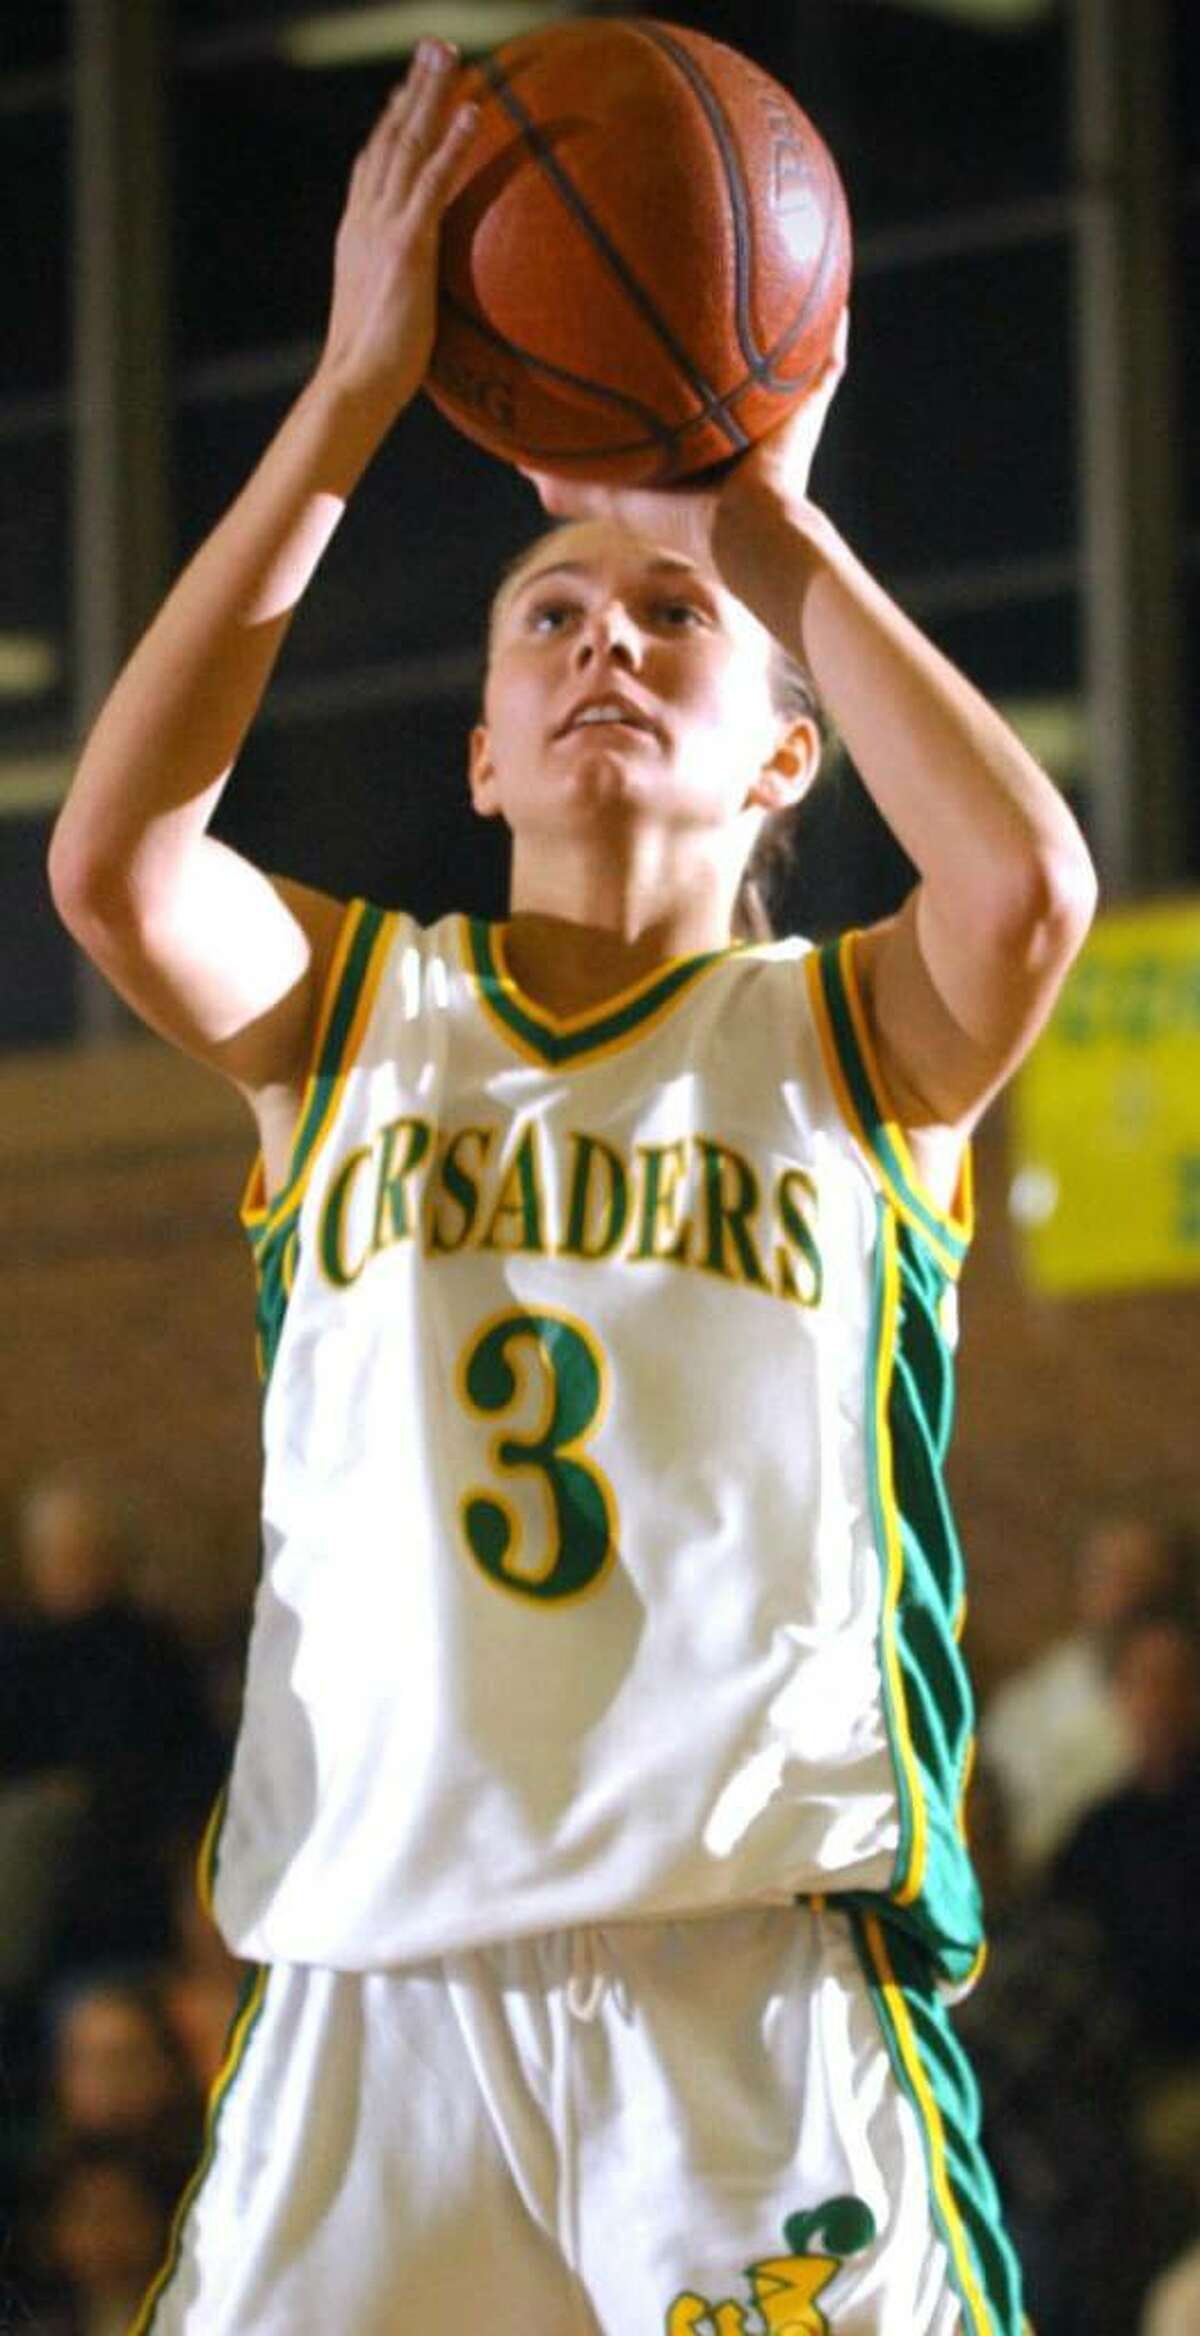 Trinity Catholic's Amanda Pape will be inducted into the Connecticut Women's Basketball Hall of Fame Wednesday.